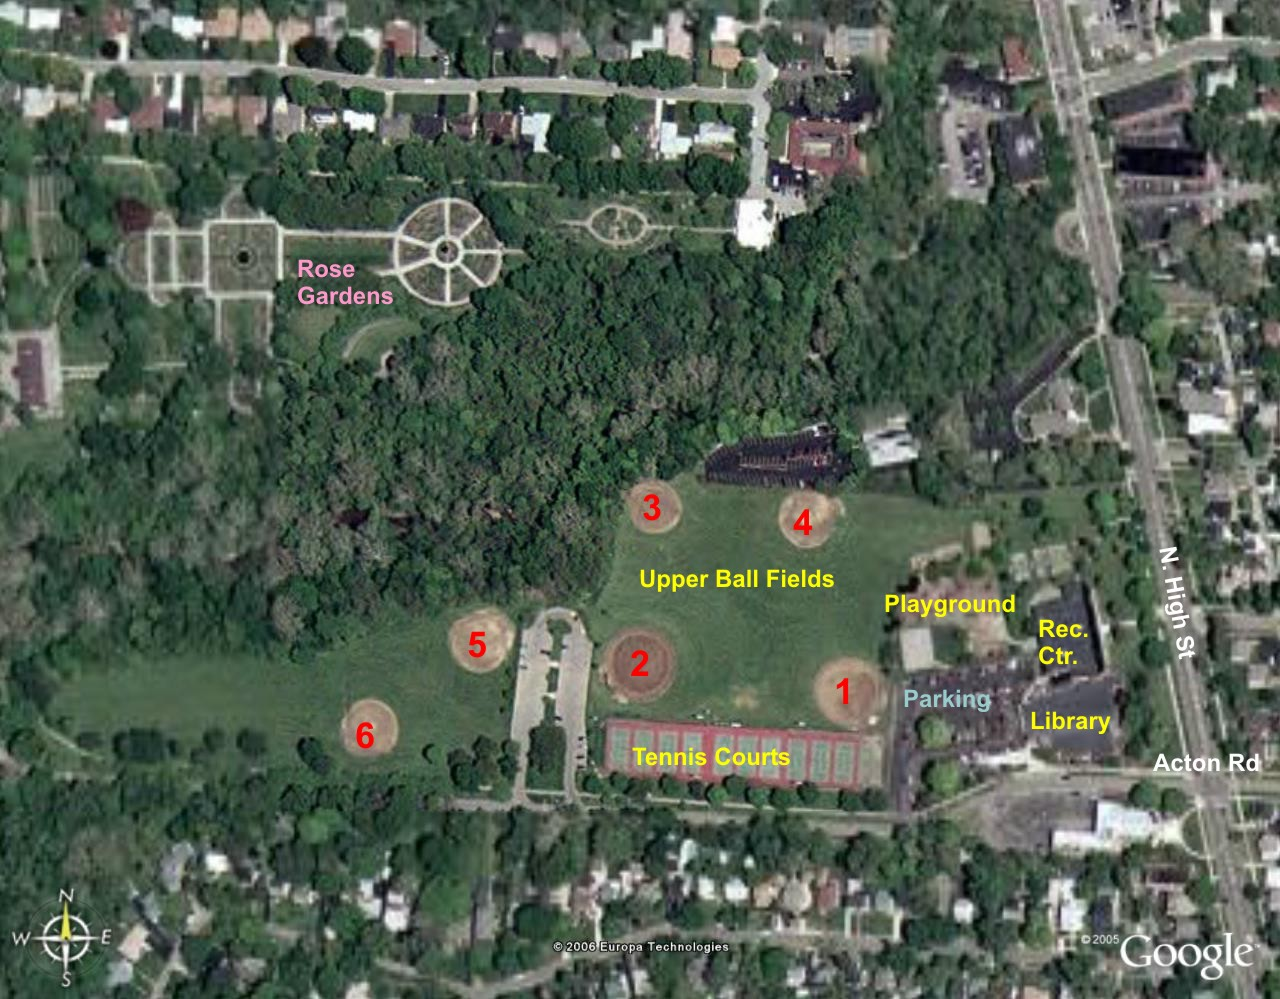 Clintonville Online Parks And Recreation